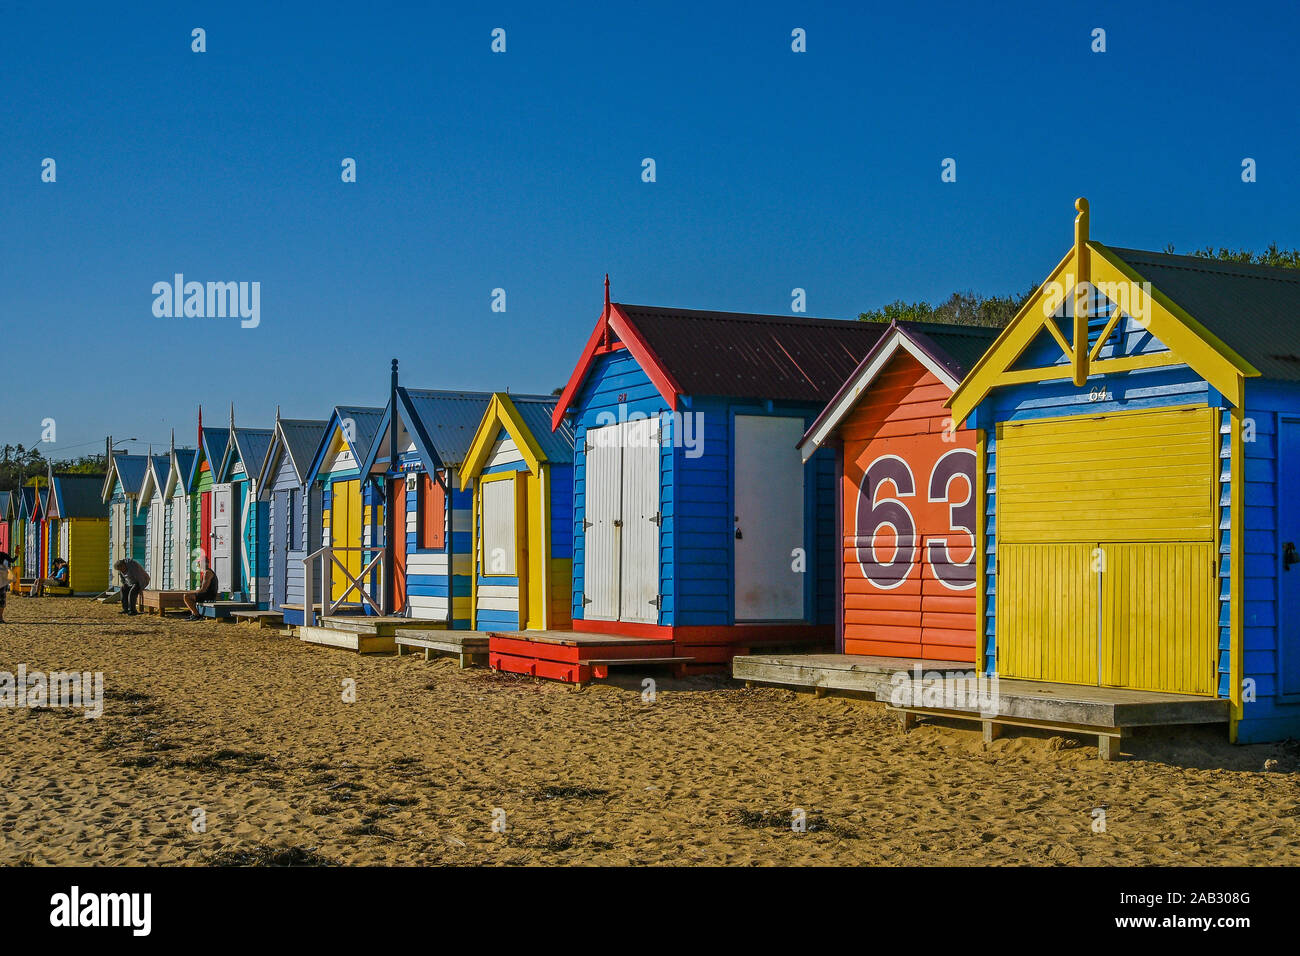 Australia, Victoria, Melbourne, April 12. 2019 - Brighton Beach features 82 colourful bathing boxes which are one of the tourist icons of Melbourne. B Stock Photo